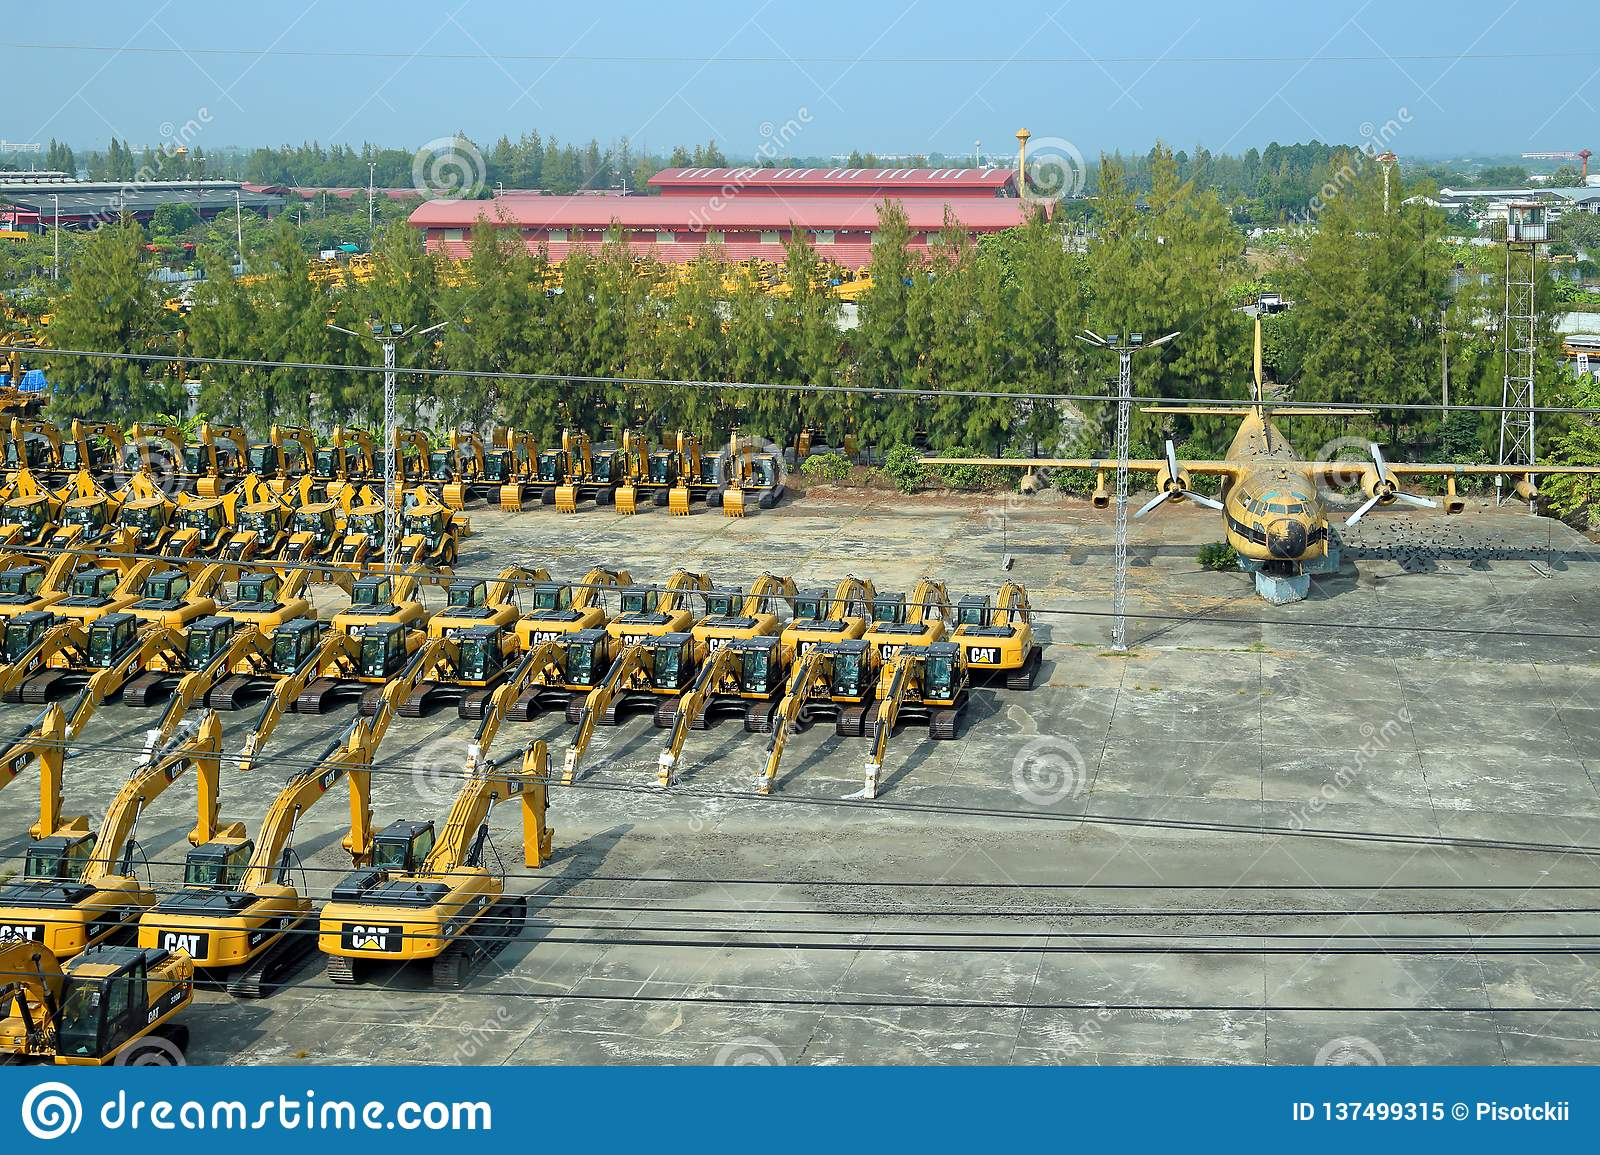 Excavators Company Caterpillar On Pre-sale Parking In The